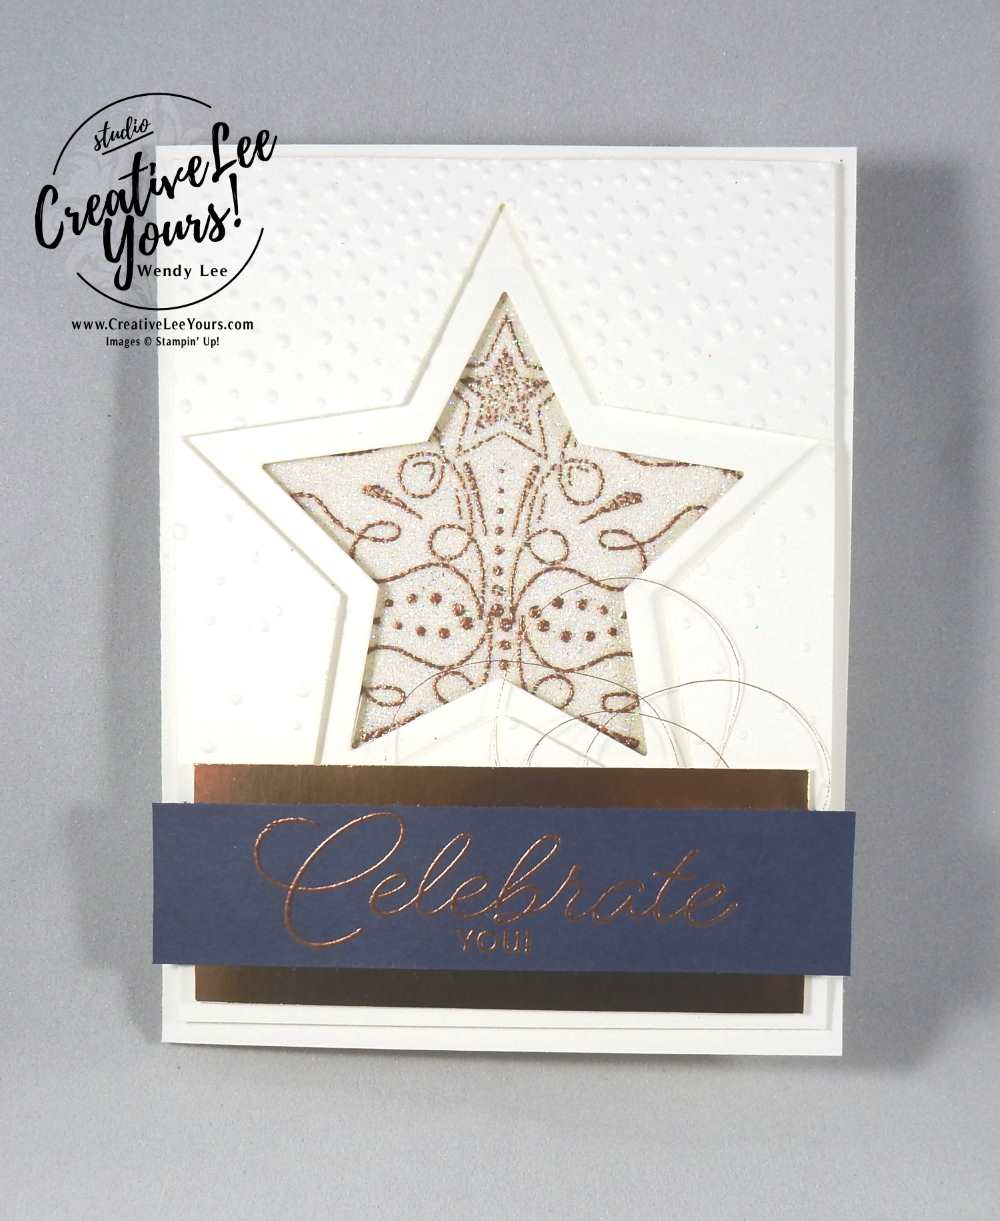 You're a Star by Wendy Lee, Stampin Up, #creativeleeyours, Celebrate you,birthday blast tamp set, stars framelits, embossing